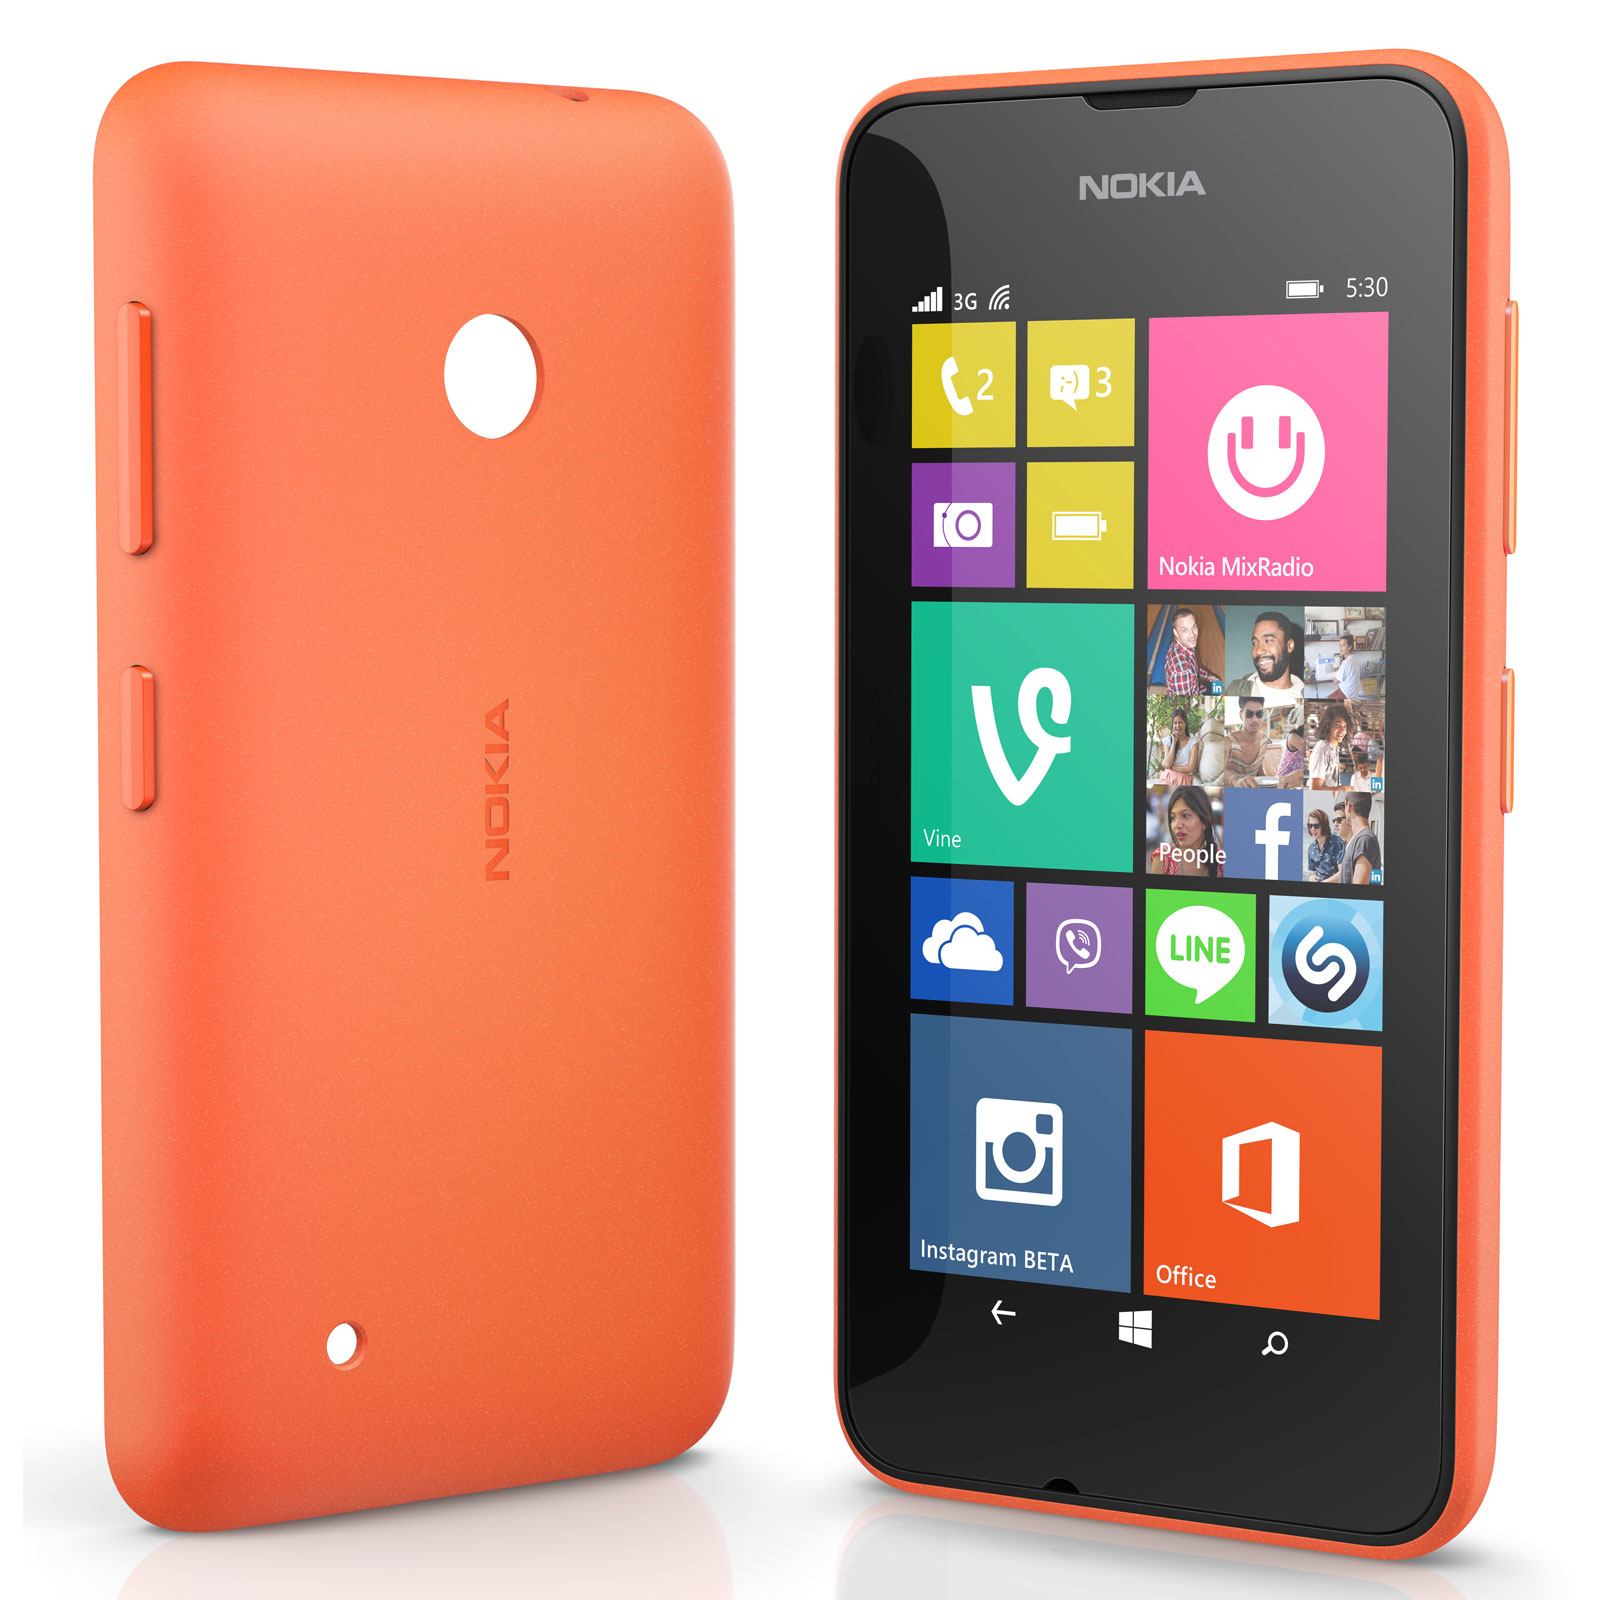 nokia shell cc 3084 orange nokia lumia 530 etui t l phone nokia sur ldlc. Black Bedroom Furniture Sets. Home Design Ideas